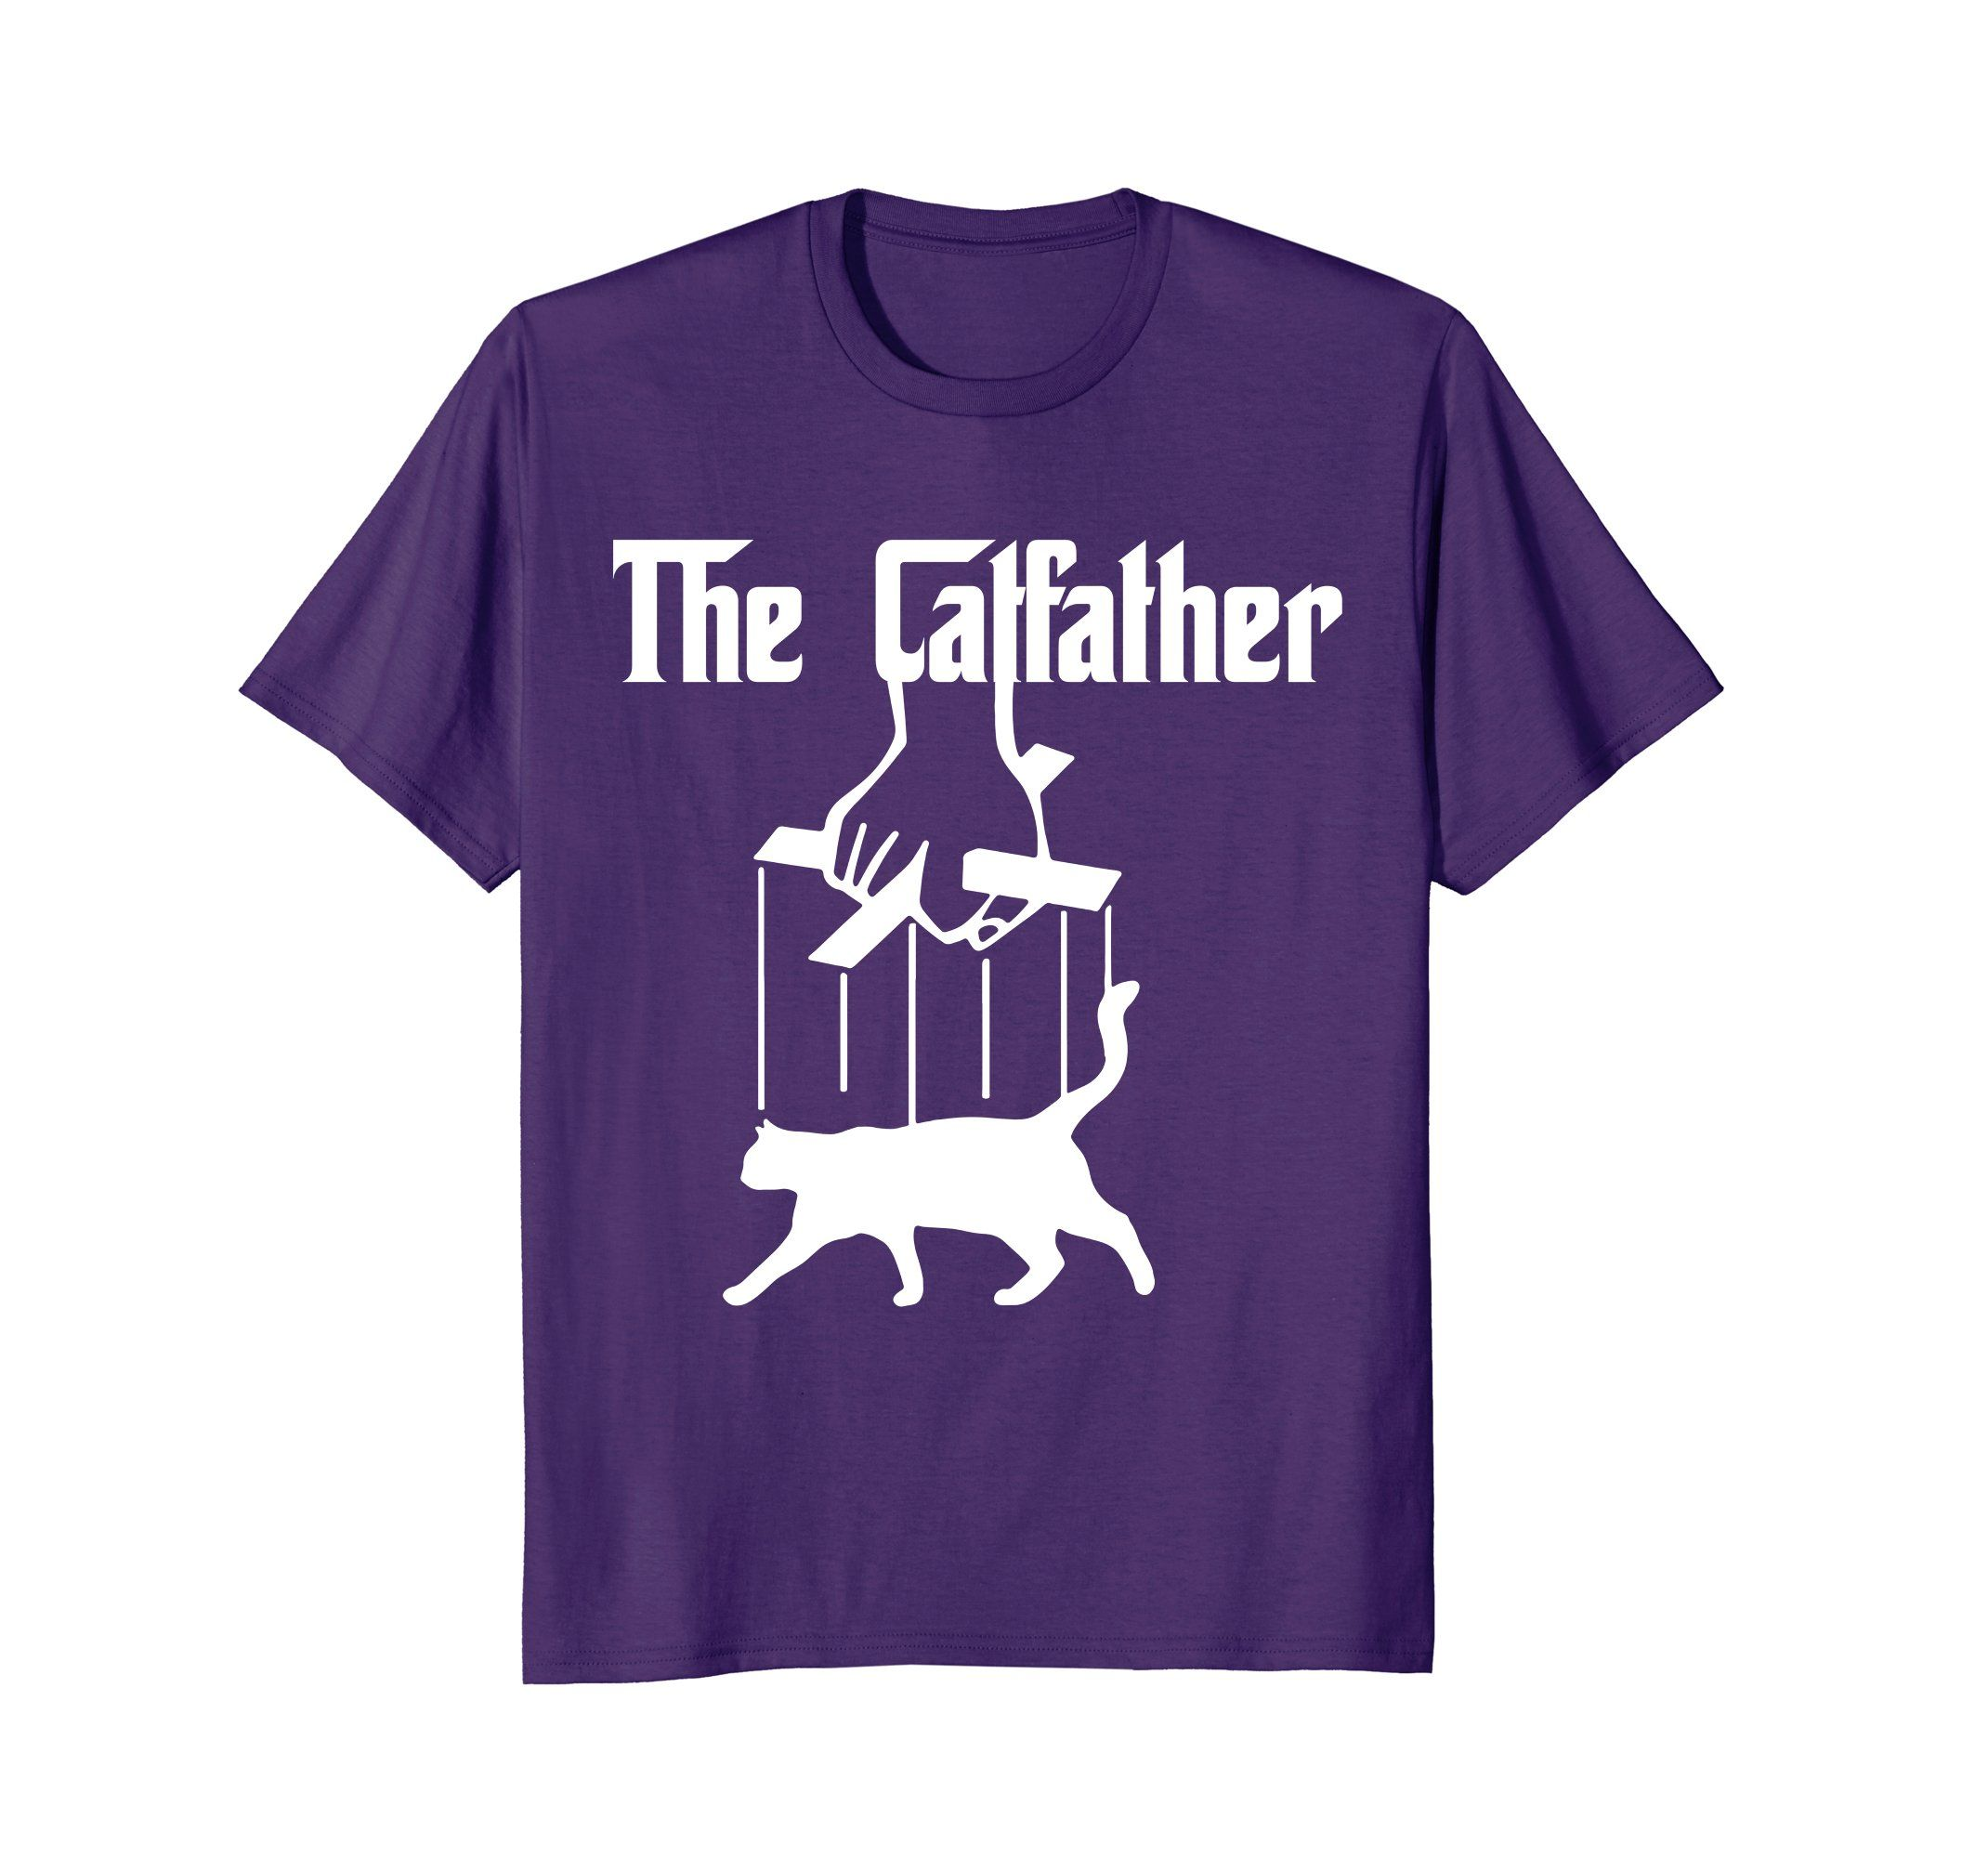 6e95ceae79f7f The Catfather Cool Funny Cat Novelty Shirt by Scar Design. SOLD ...